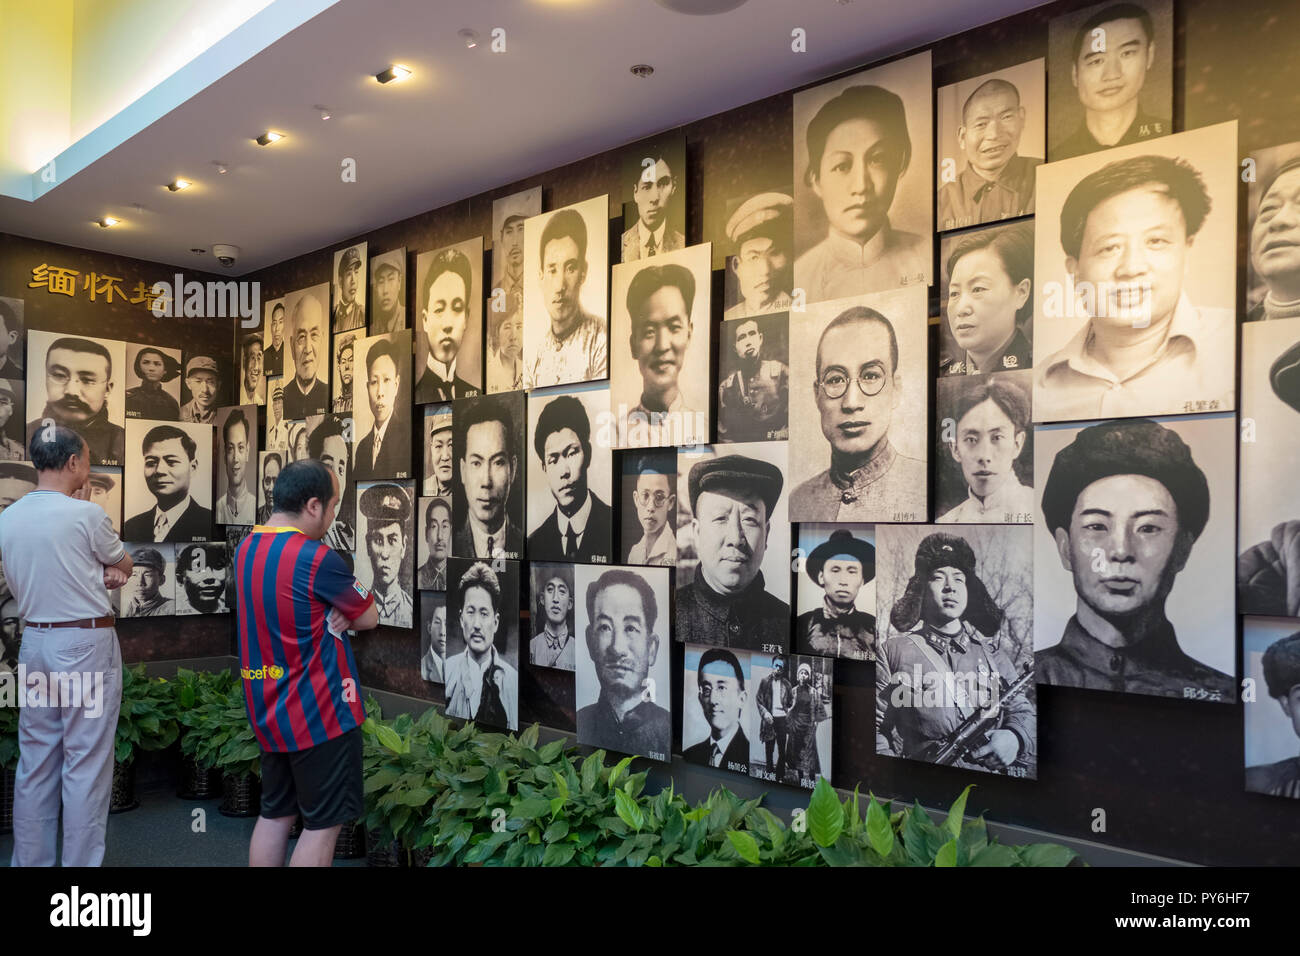 Photographs in the exhibition hall, part of the Site of the First National Congress of the Chinese Communist Party, Shanghai, China, Asia - Stock Image